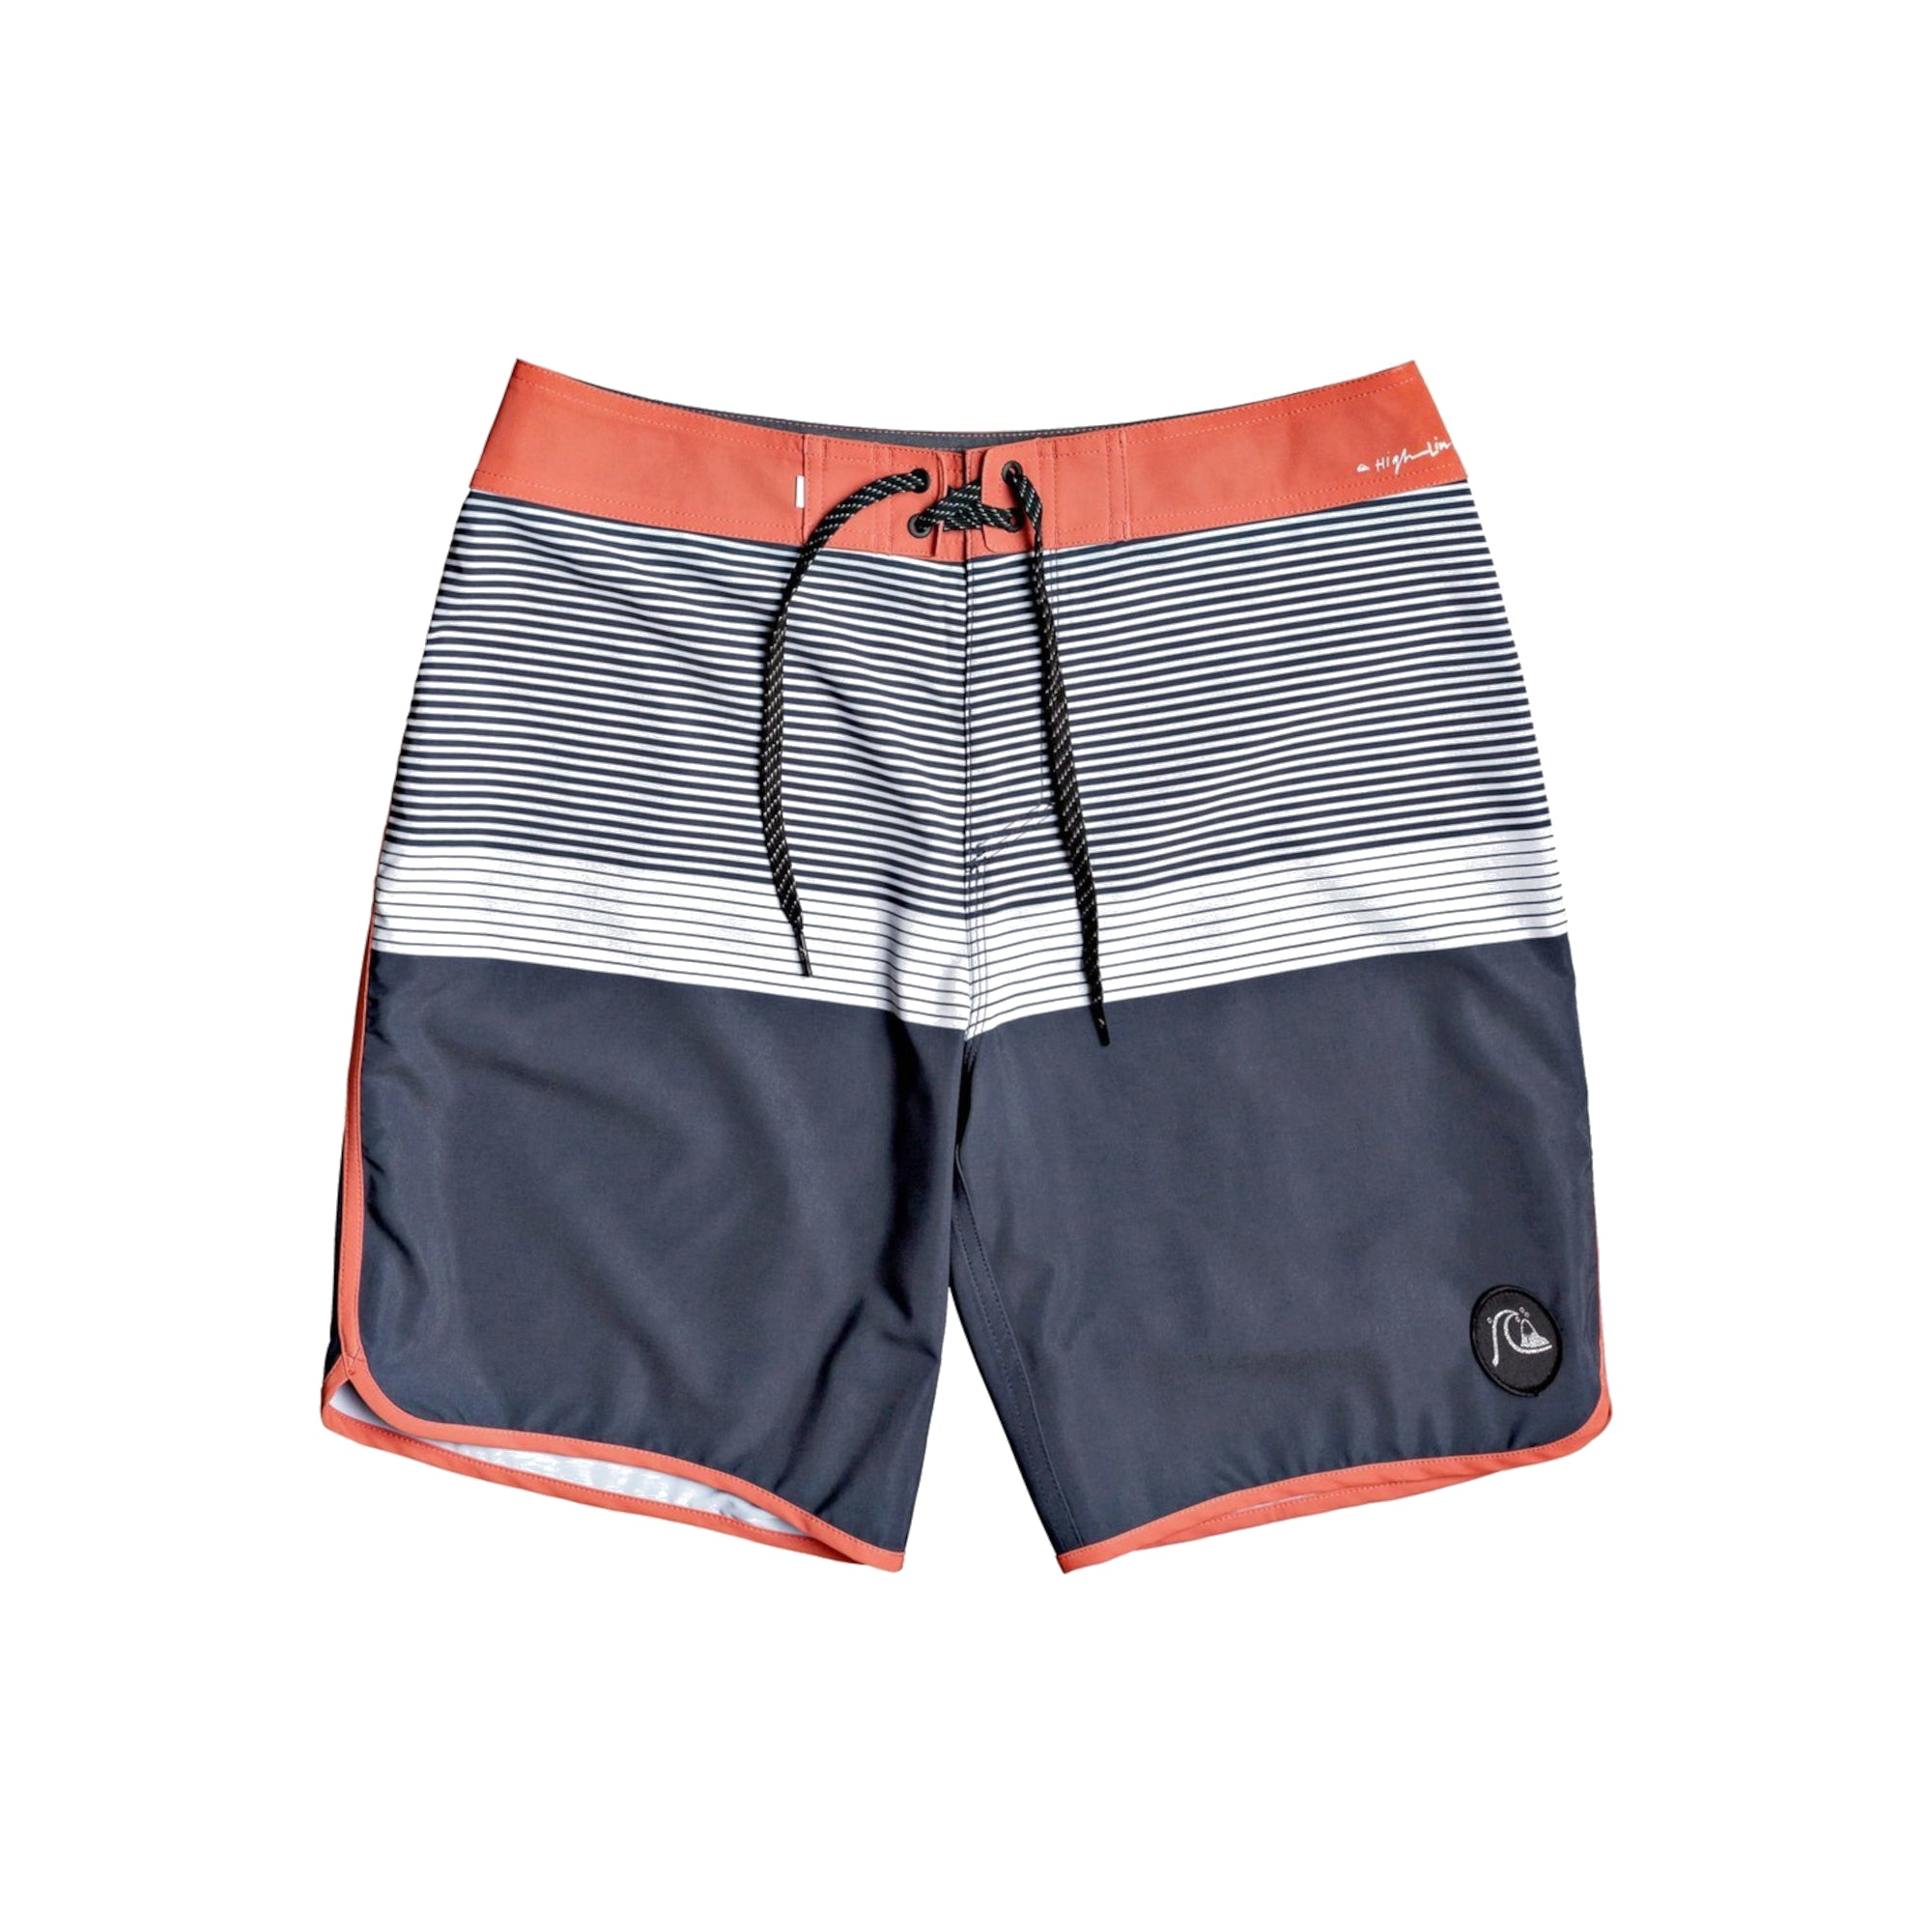 Quiksilver Highline Tijuana Men's Boardshorts